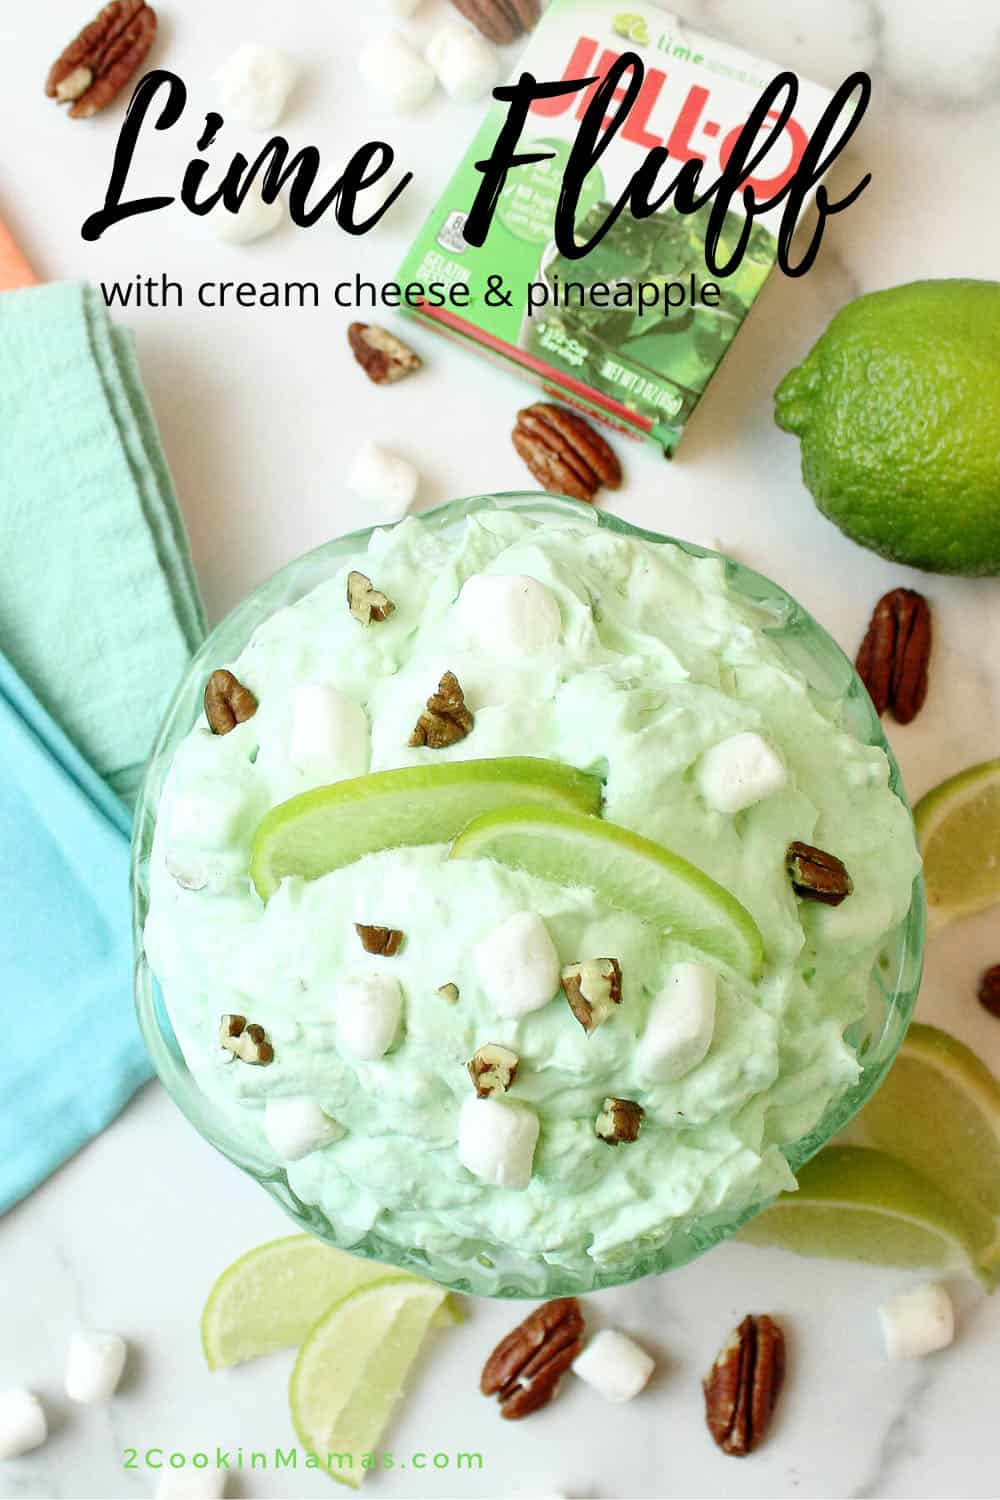 Lime Fluff with Cream Cheese & Pineapple